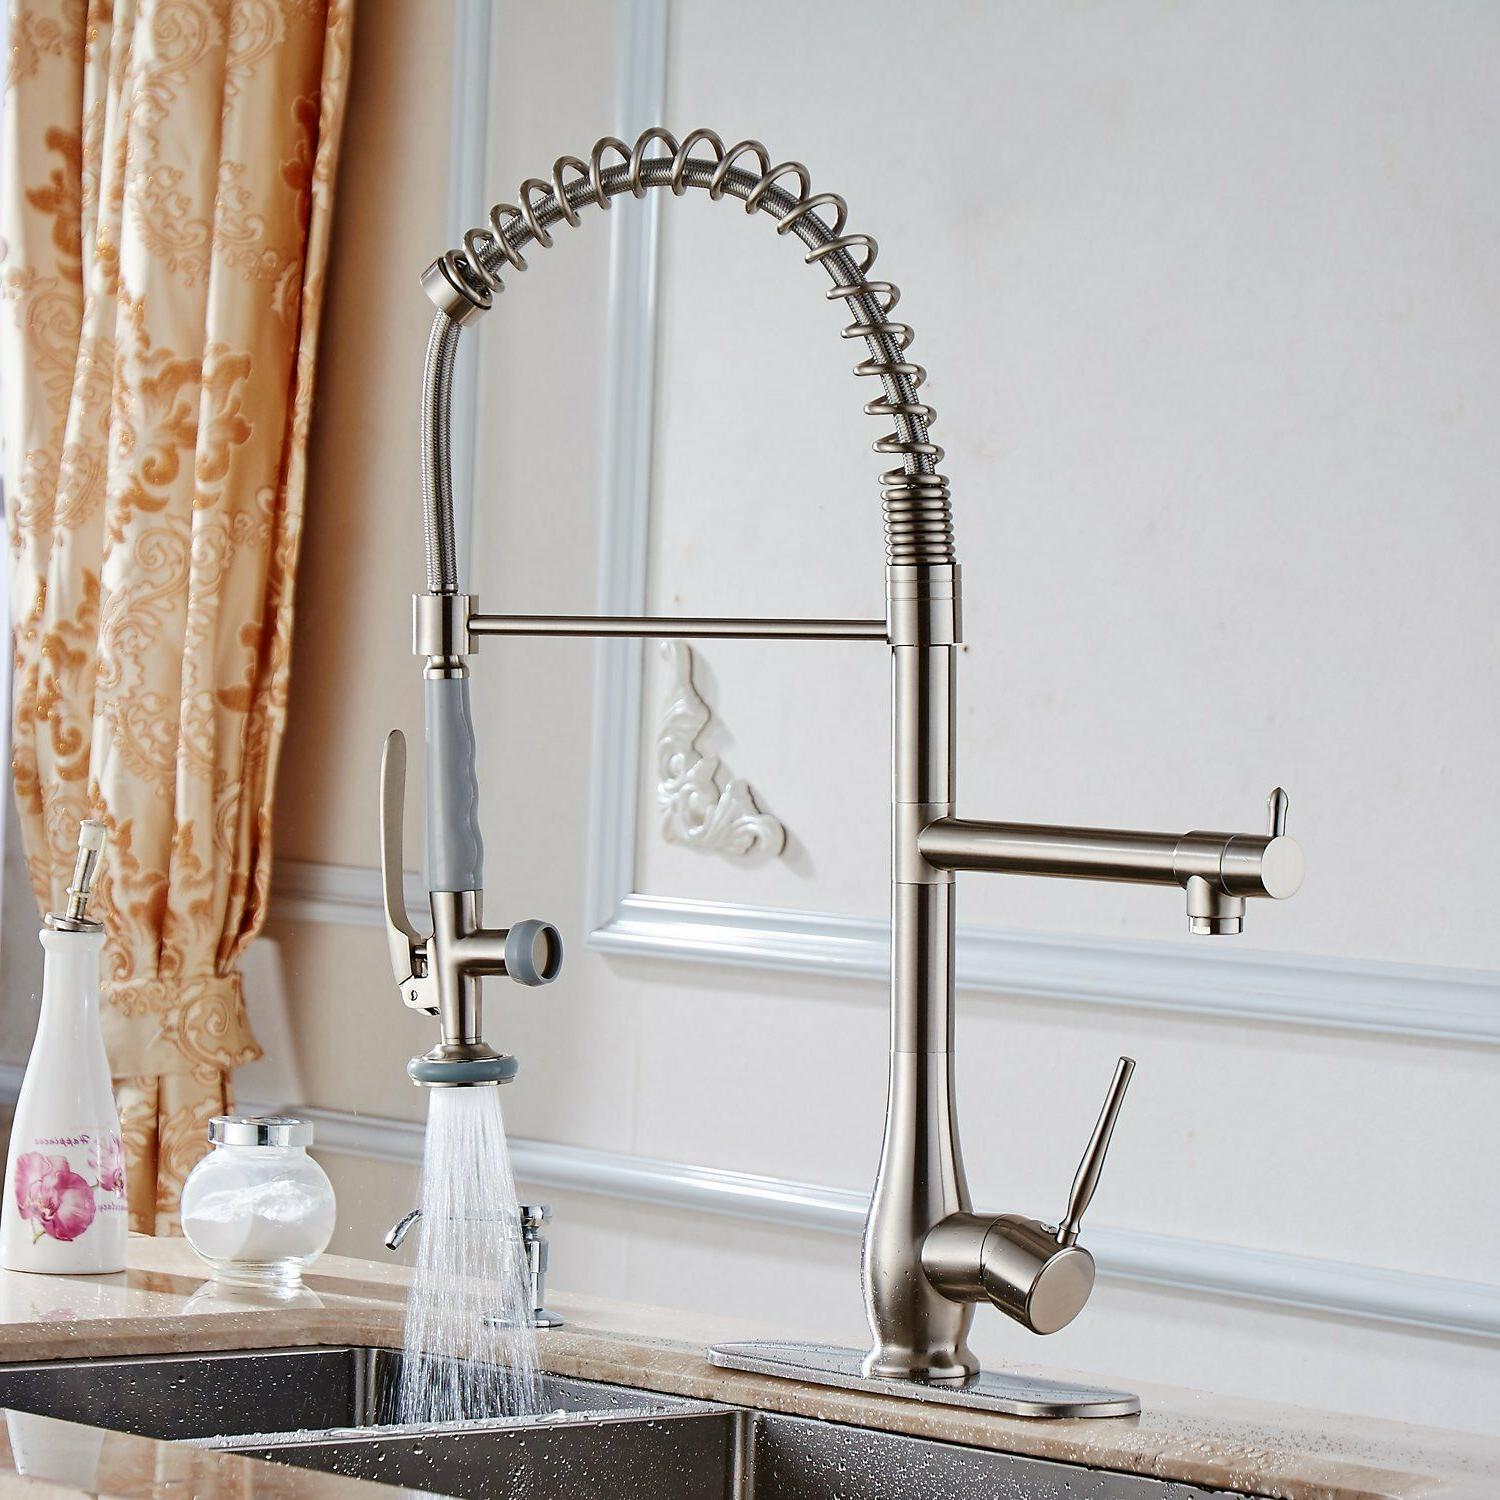 Single Kitchen Faucet with Sprayer